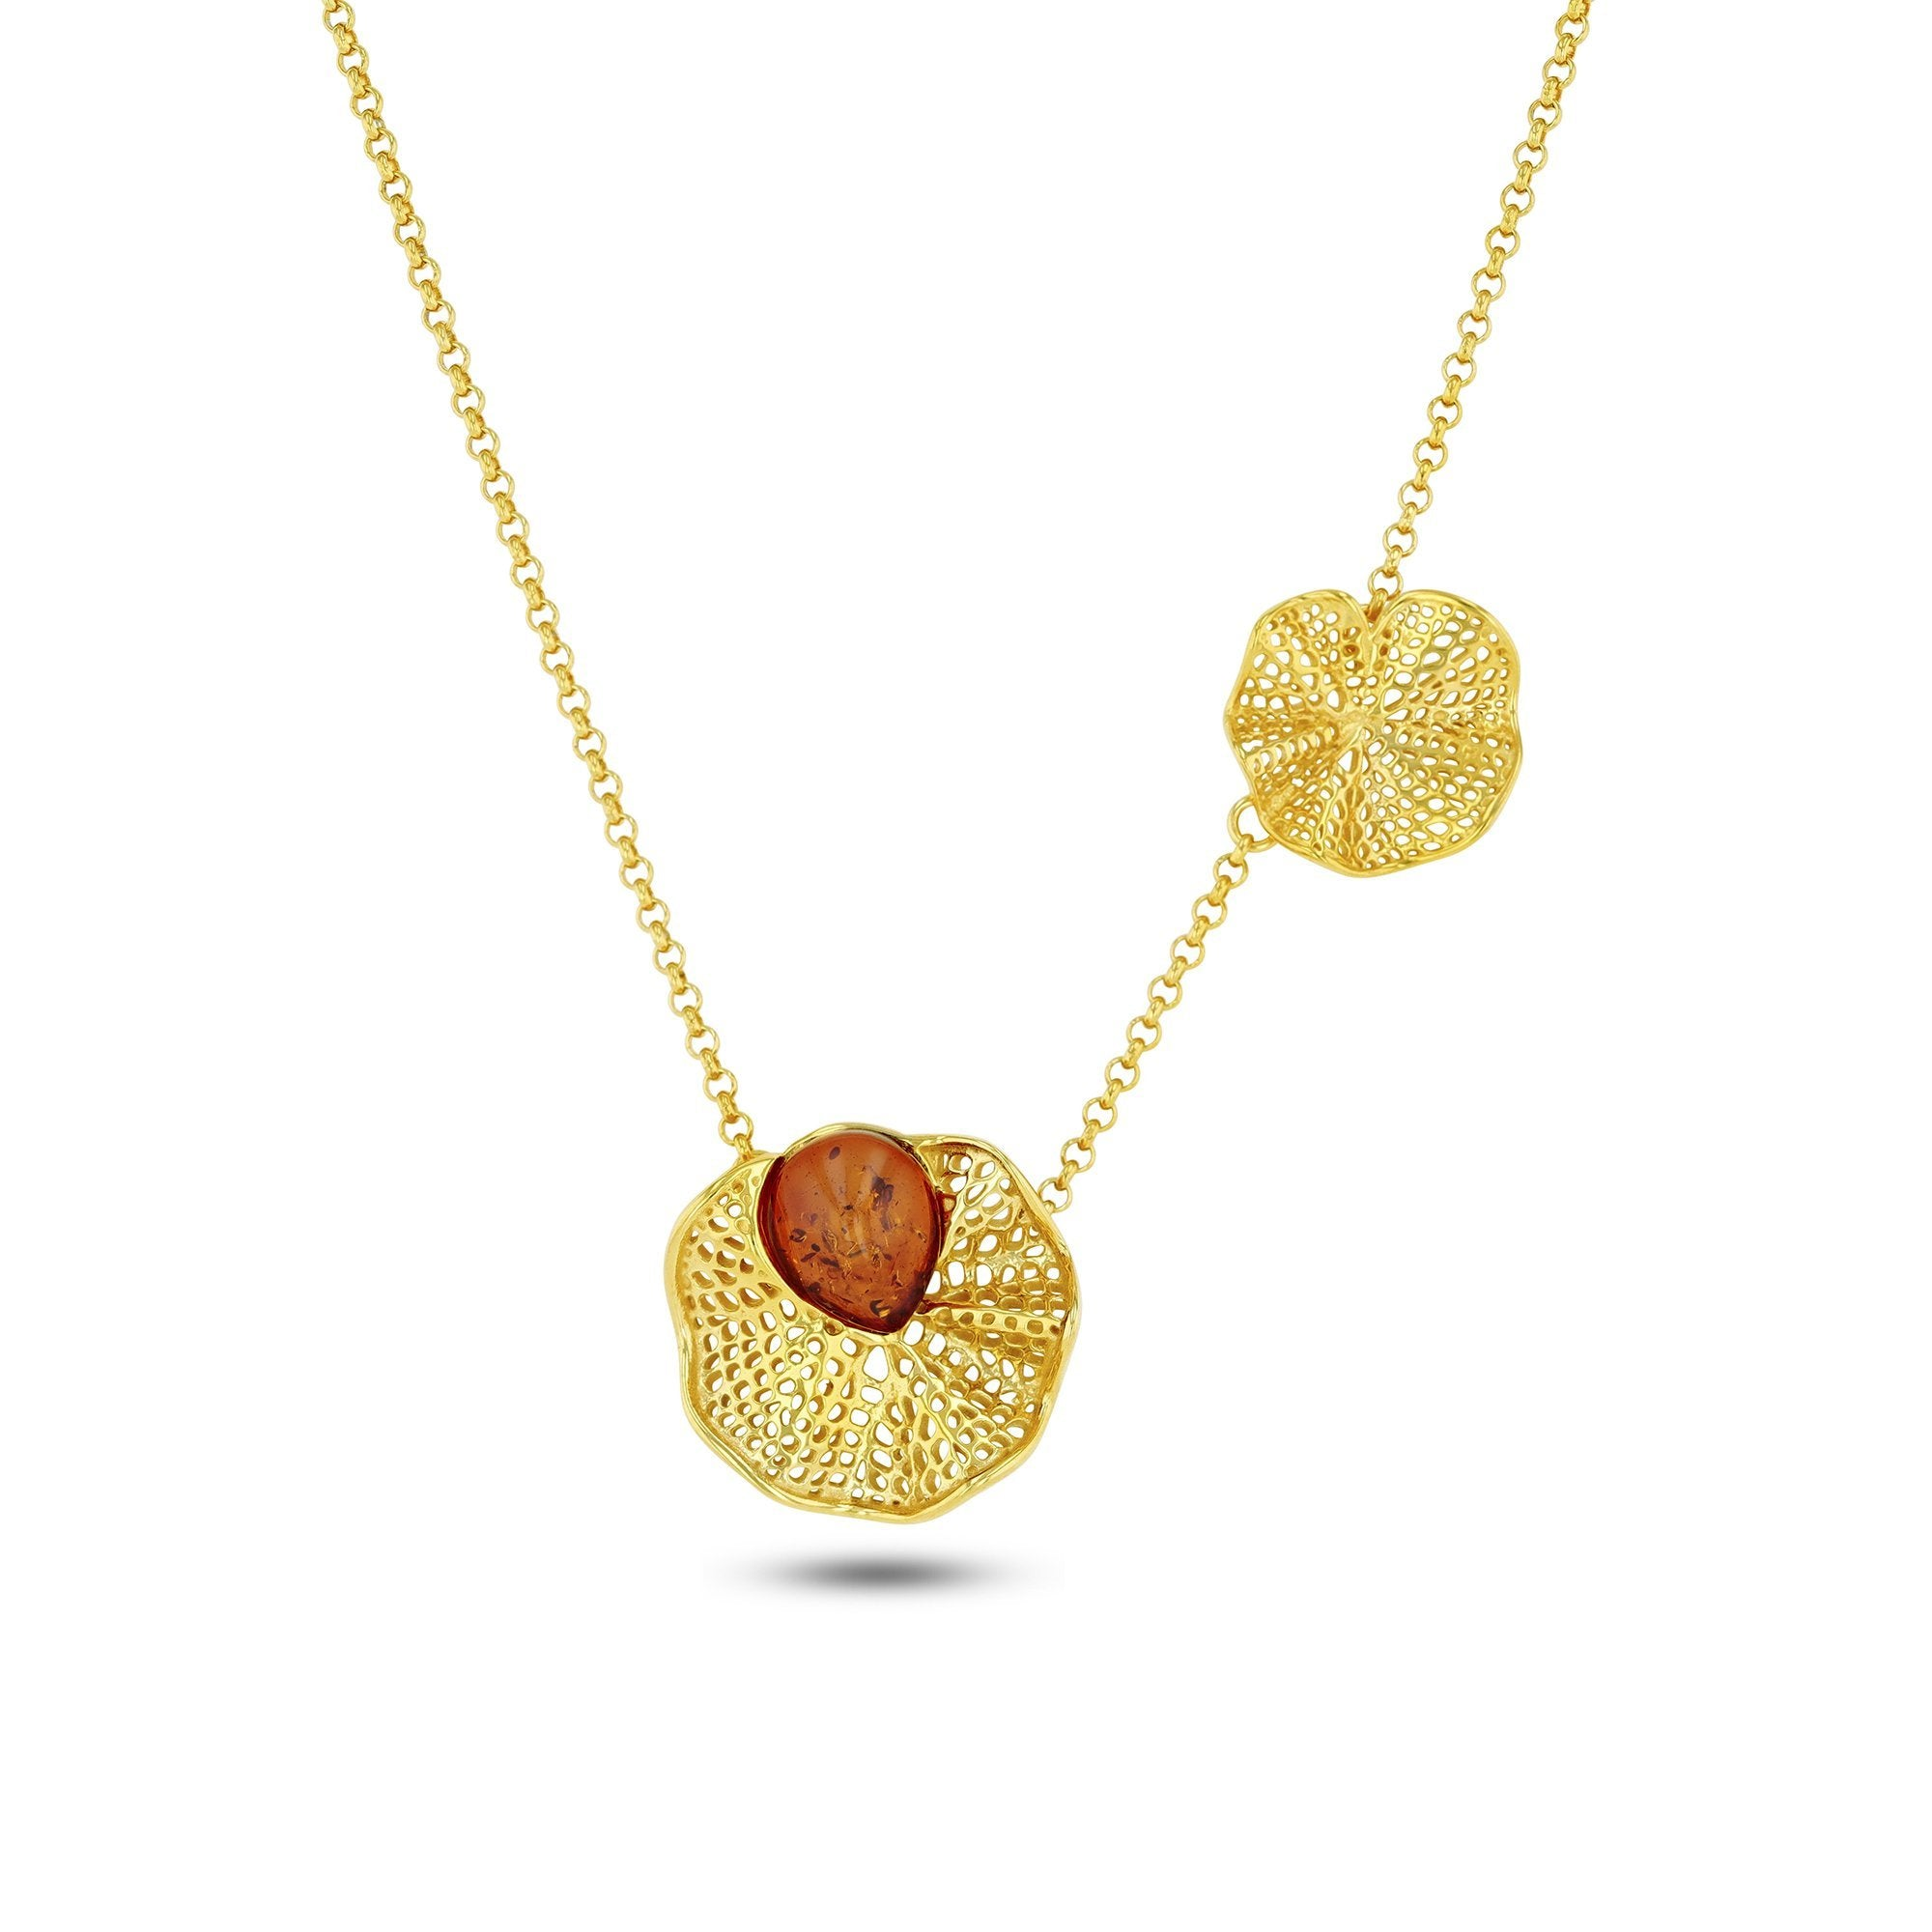 Morning Glory Cognac Necklace - Koraba